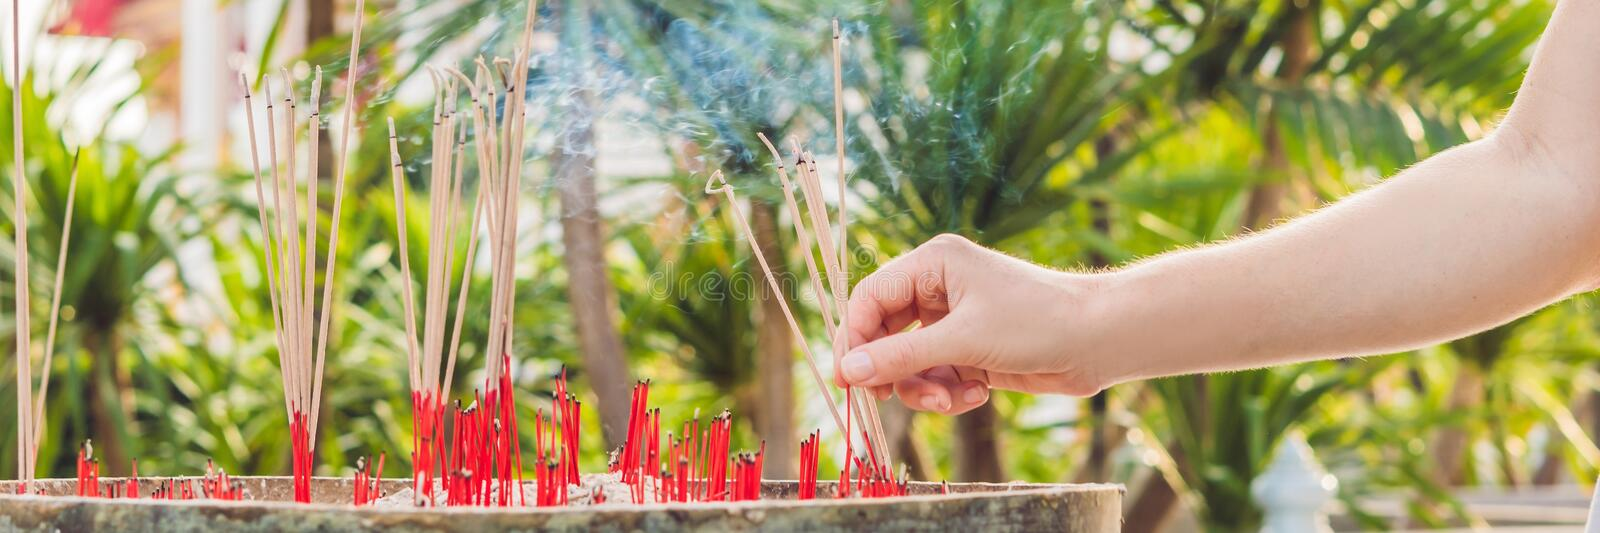 Smell the smoke of Incense, The smoke of joss stick in temple, smoke of incense in the spirit shrine BANNER, long format stock photos